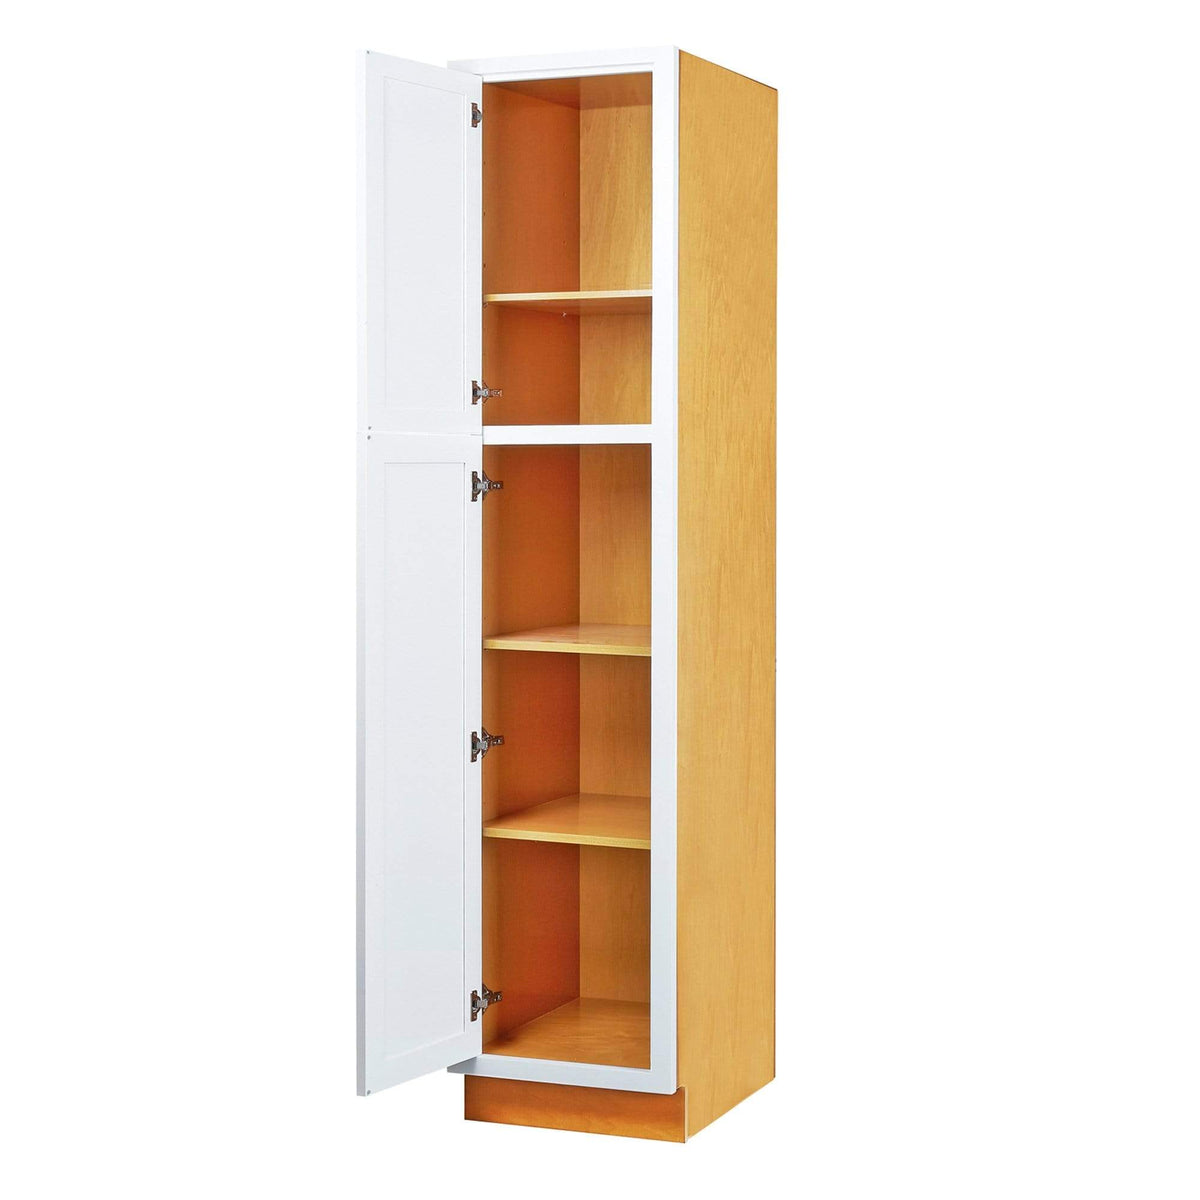 "Pantry Cabinet Pantry Snow White Inset Shaker Cabinet 84"" Tall 18' Wide D1PC1884 Inset Kitchen Cabinets"